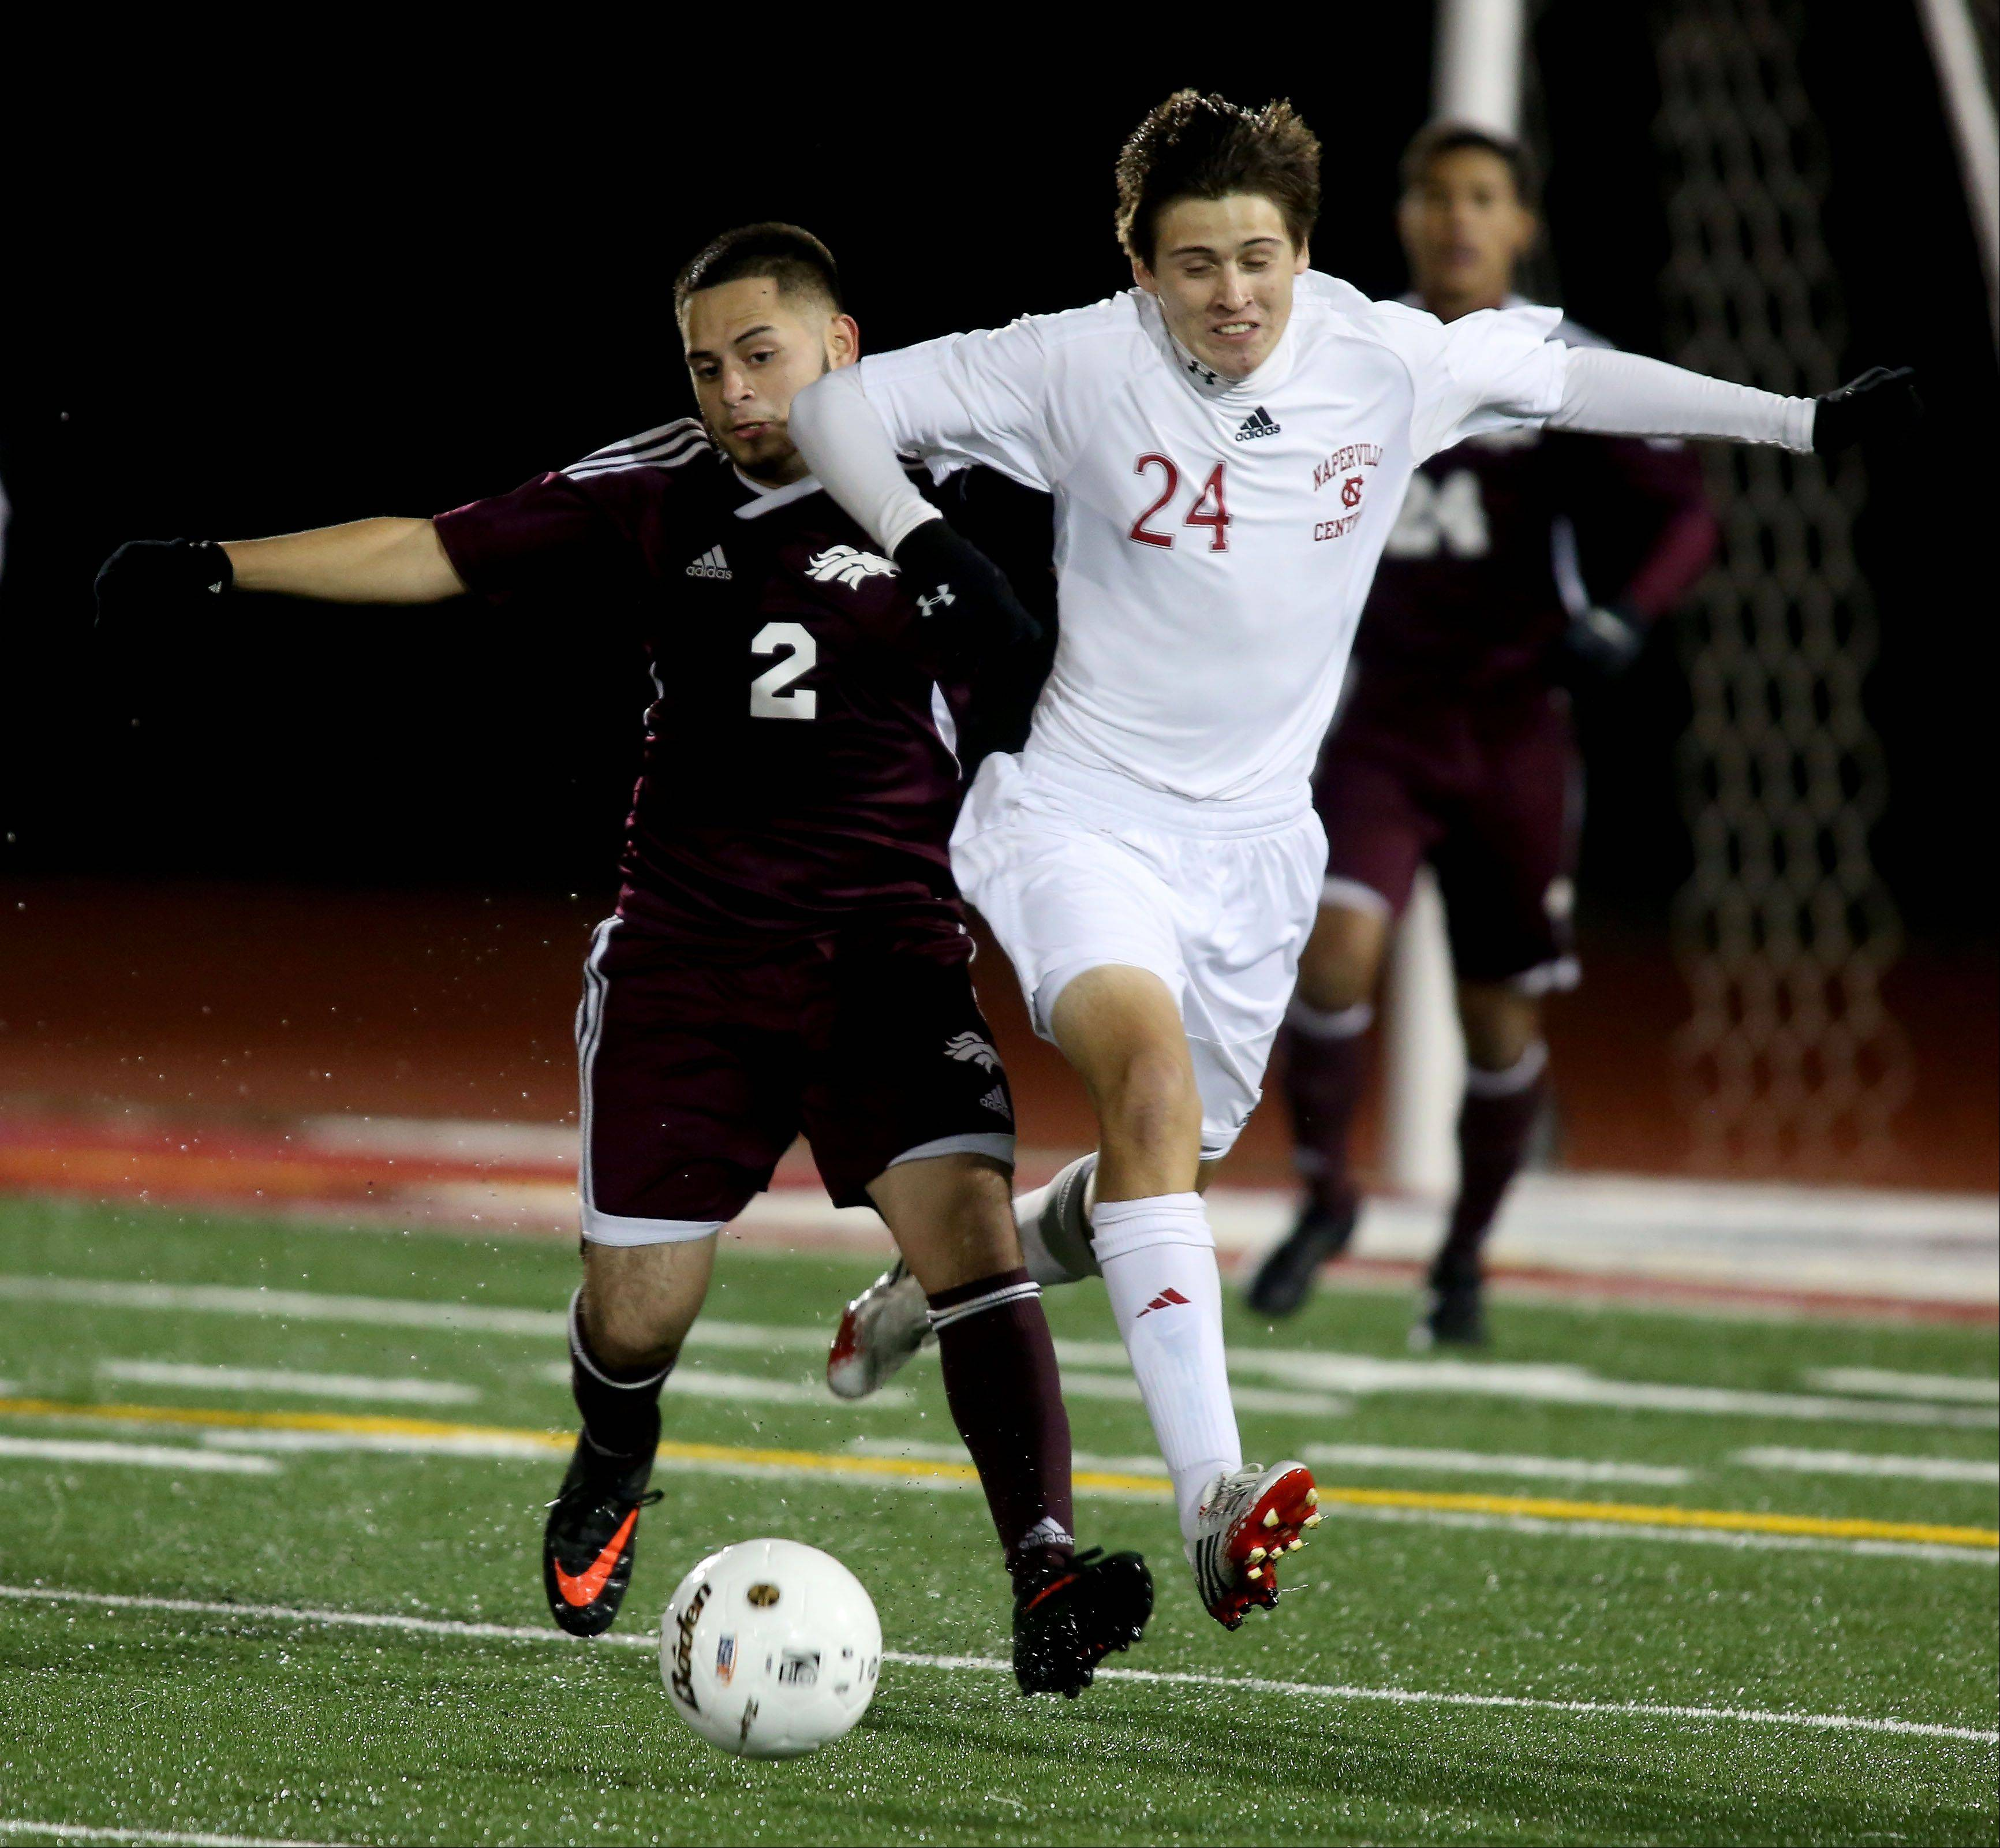 Nick Coon of Naperville Central, right, chases down a ball with Chabelo Marquez of Morton during Class 3A super-sectional soccer in Romeoville on Tuesday.